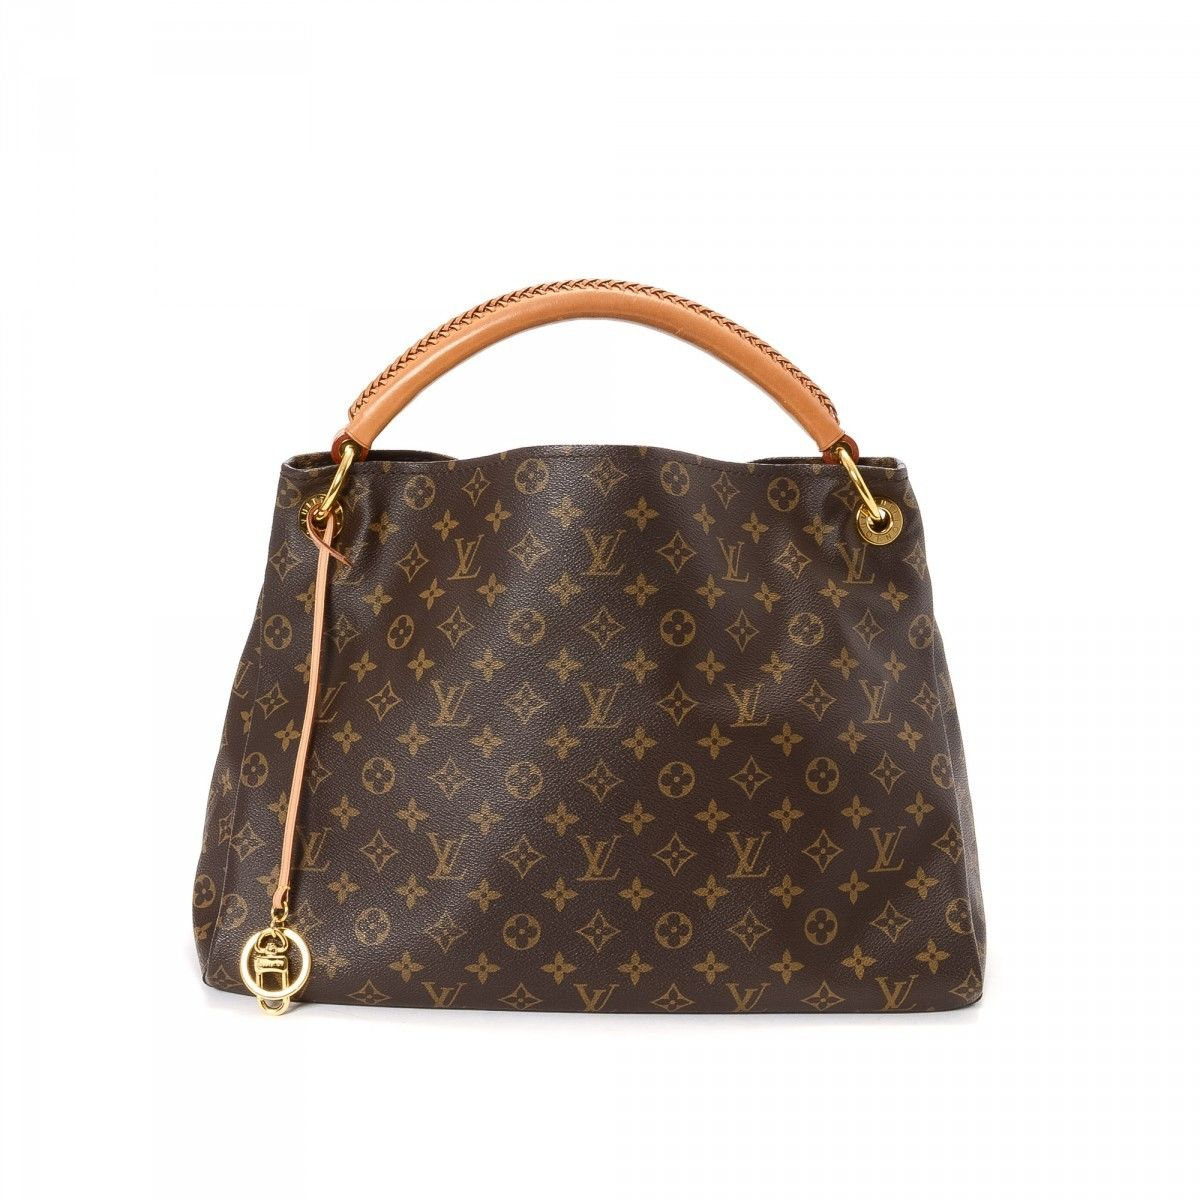 Louis Vuitton Monogram Coated Canvas artsy Mm Shoulder Handbag Purse 96VlntKxmy